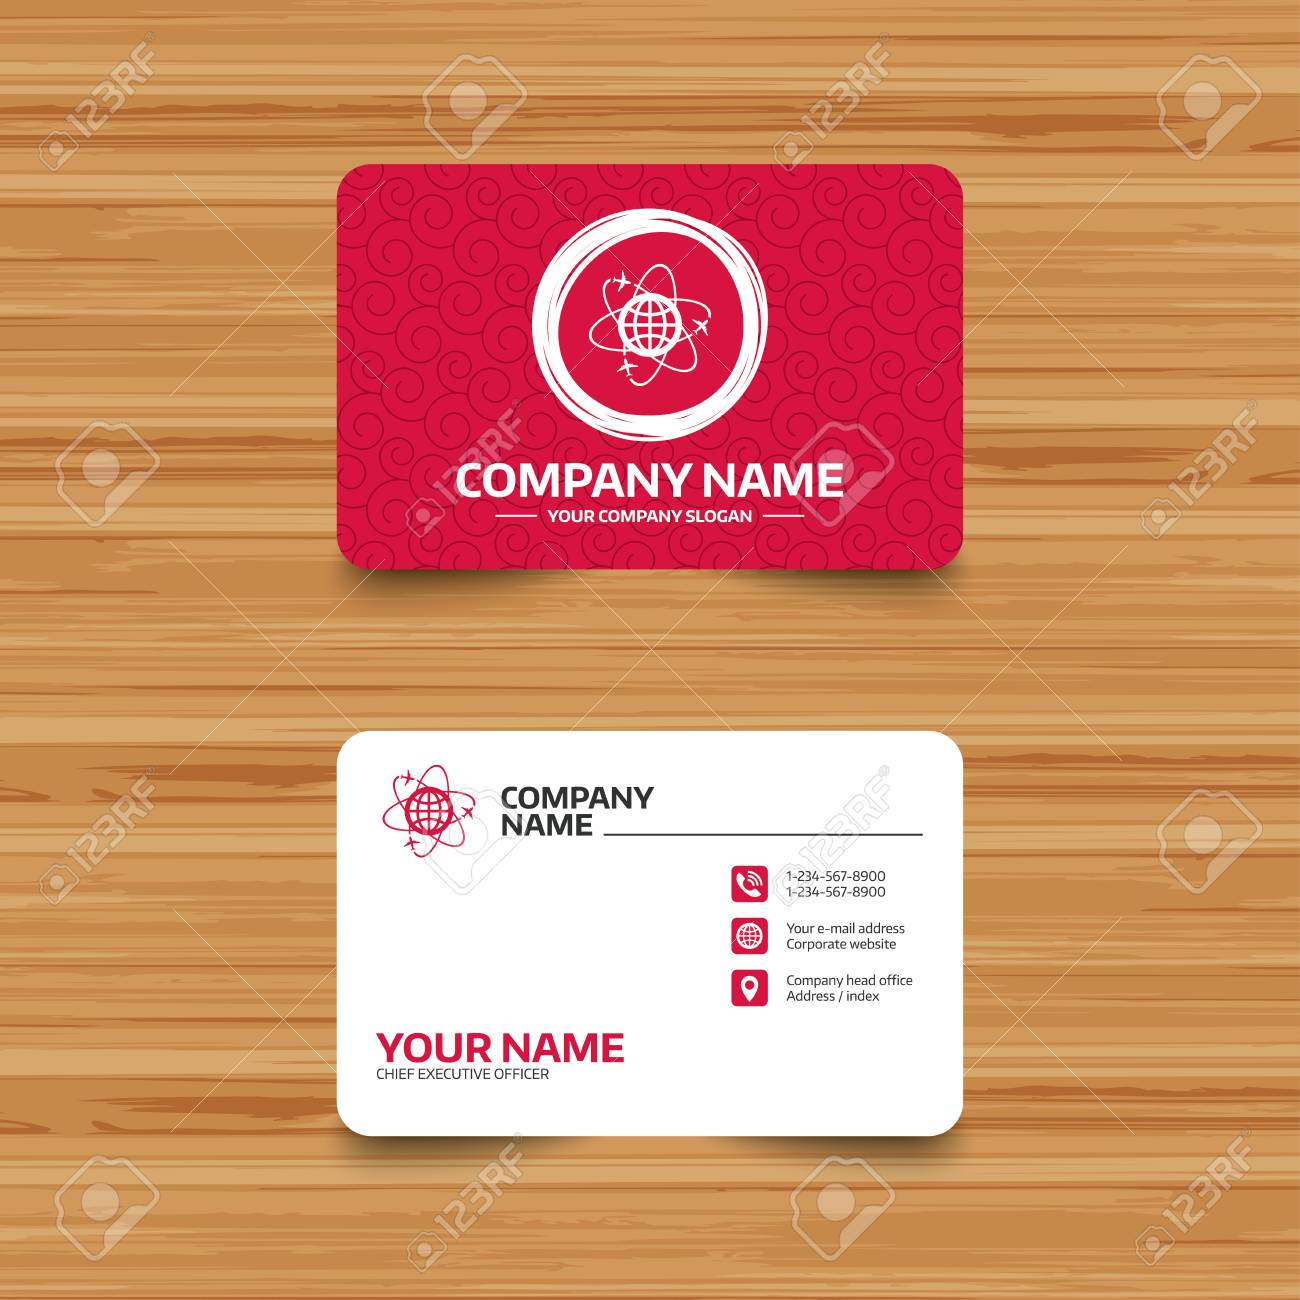 Business card template with texture globe sign icon world business card template with texture globe sign icon world logistics symbol worldwide travel wajeb Choice Image